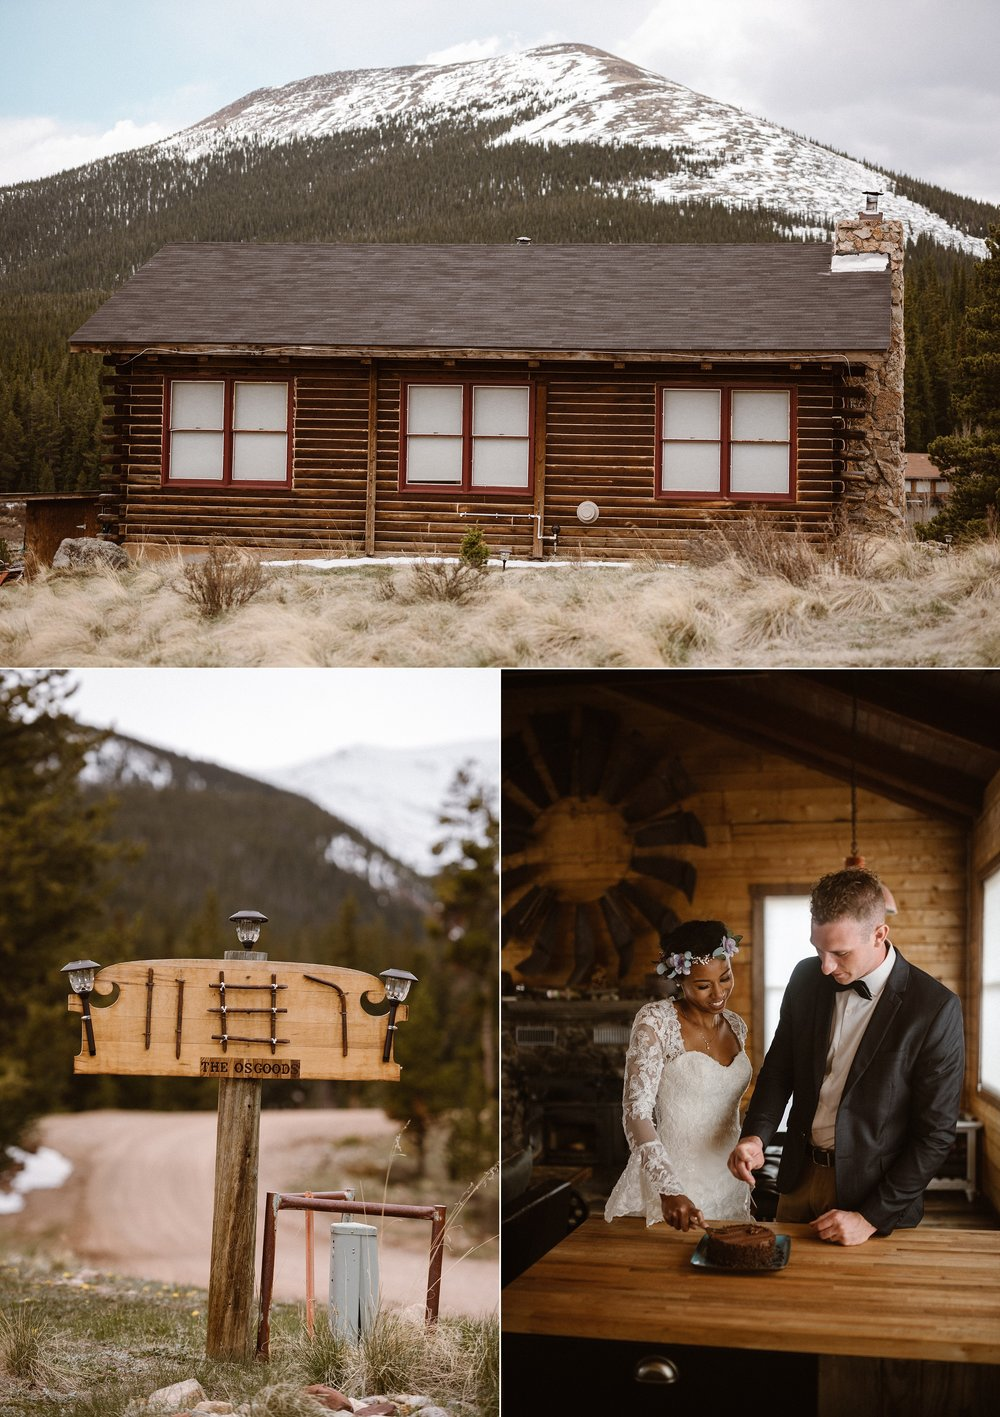 Coming down the mountain, they made their way back home - a little wood and stone cabin just south of Breckenridge Colorado. This intimate elopement captured by Colorado native Maddie Mae.